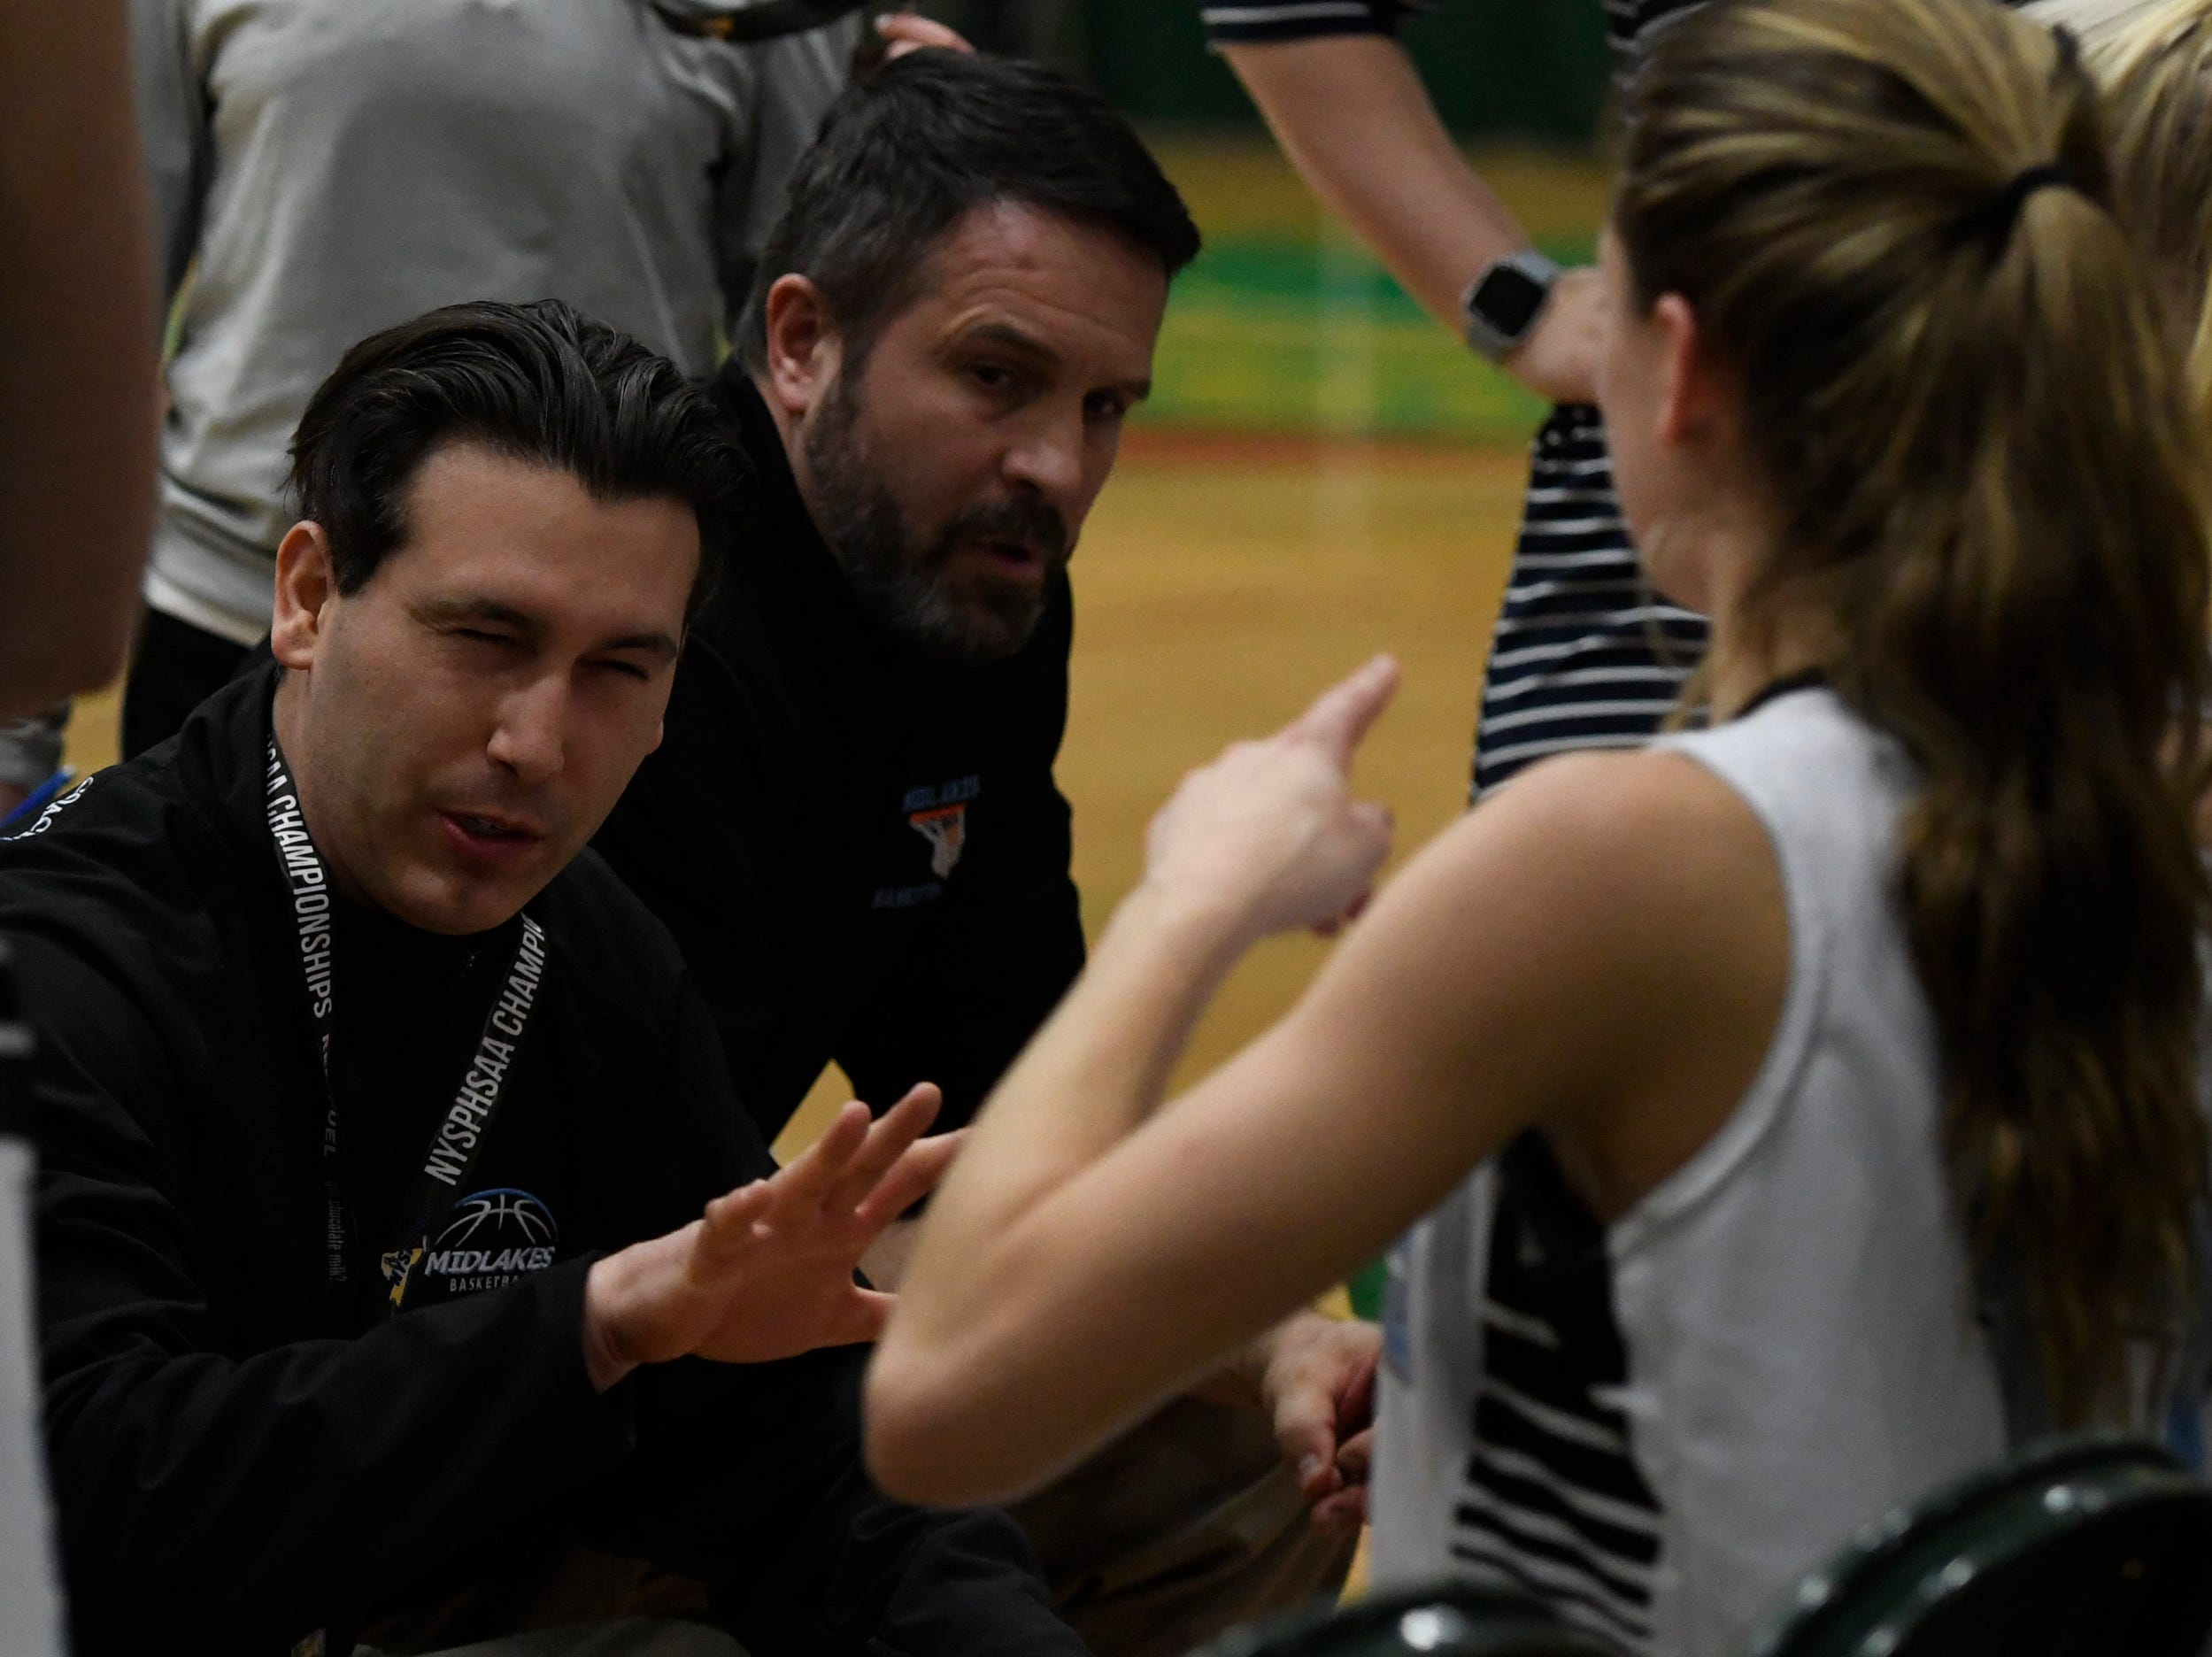 Midlakes head coach Nate Rich jokes with one of his players as she starts dancing between the third and forth quarters of their Class B State Semifinal against Canton at Hudson Valley Community College in Troy, N.Y. on Friday, Mar. 15, 2019.